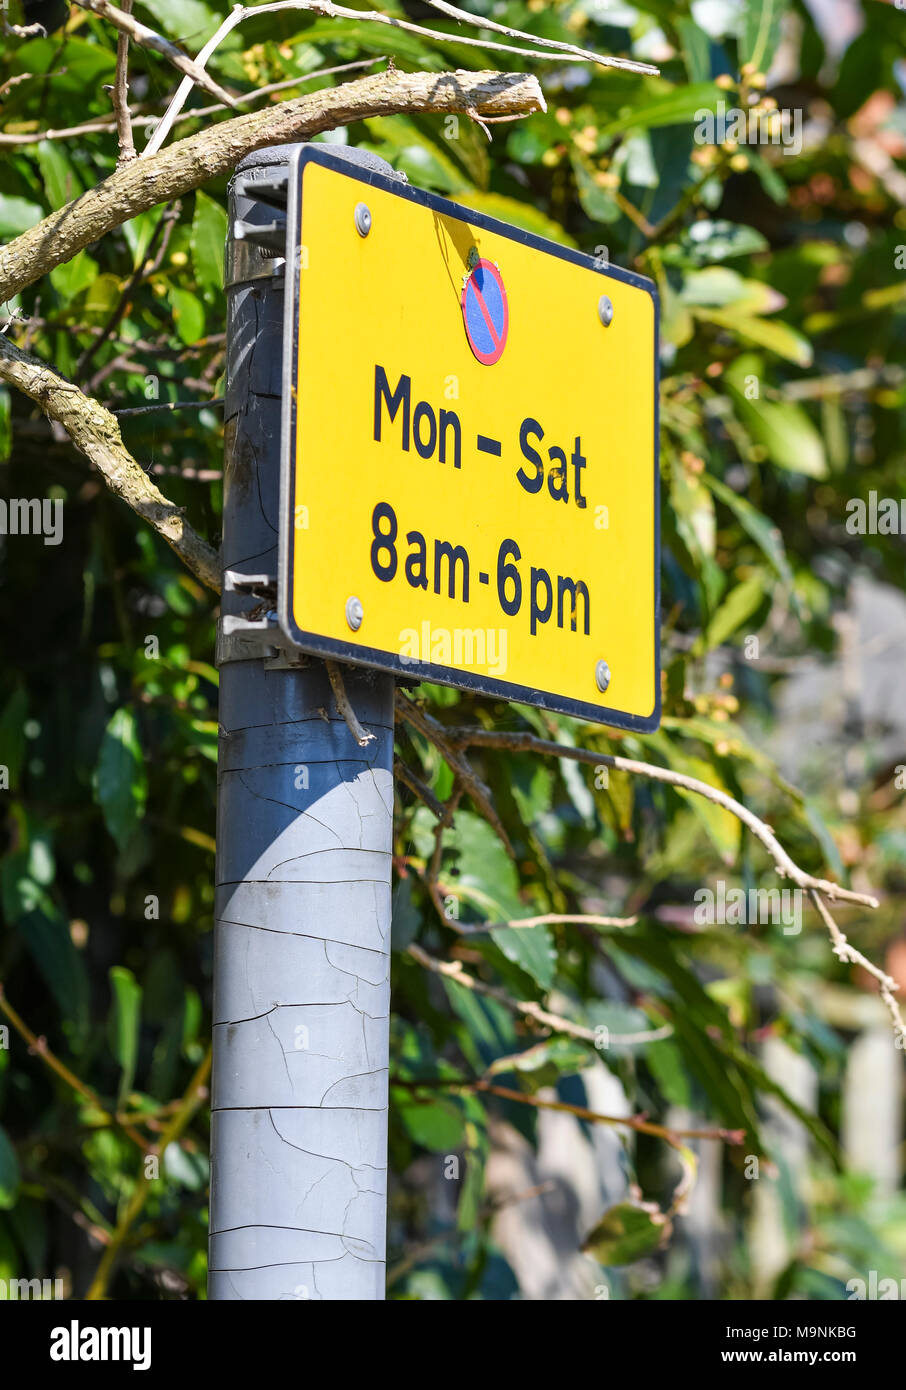 No parking mon-sat sign on the roadside in the UK. - Stock Image